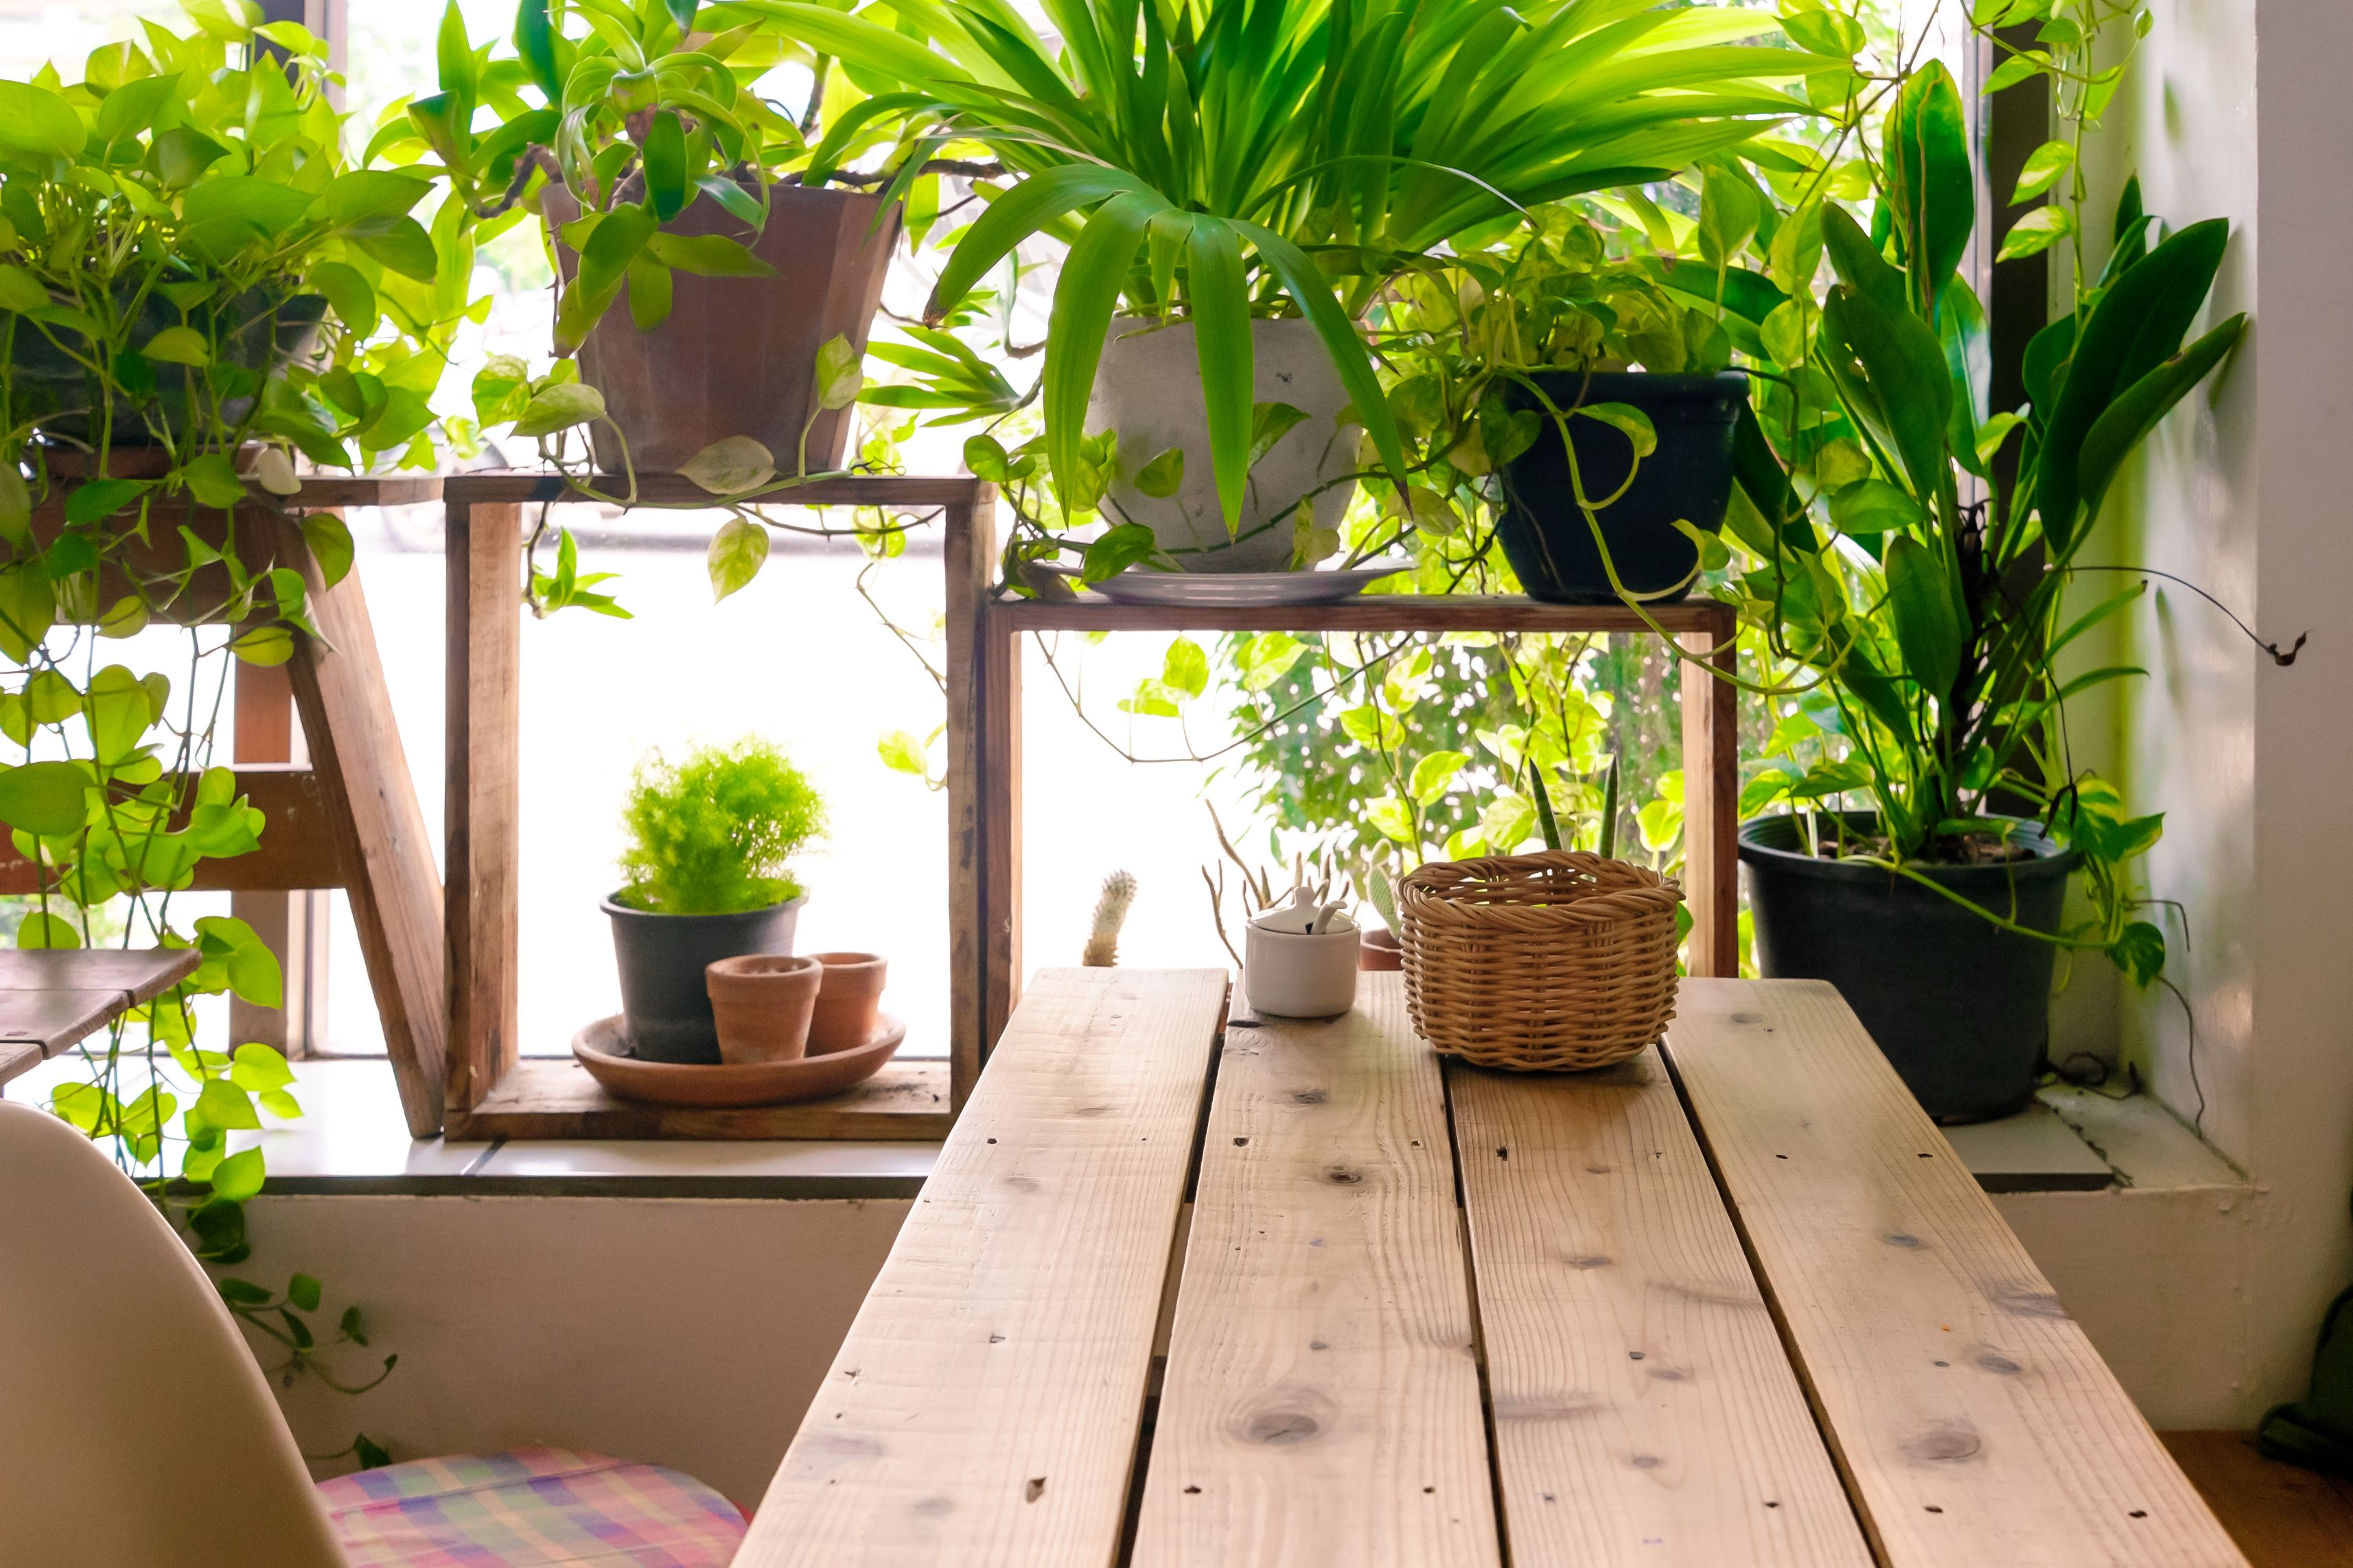 cool office plants. 7 Best Indoor Plants For Air Quality - Air-Purifying Houseplants Your Home Cool Office